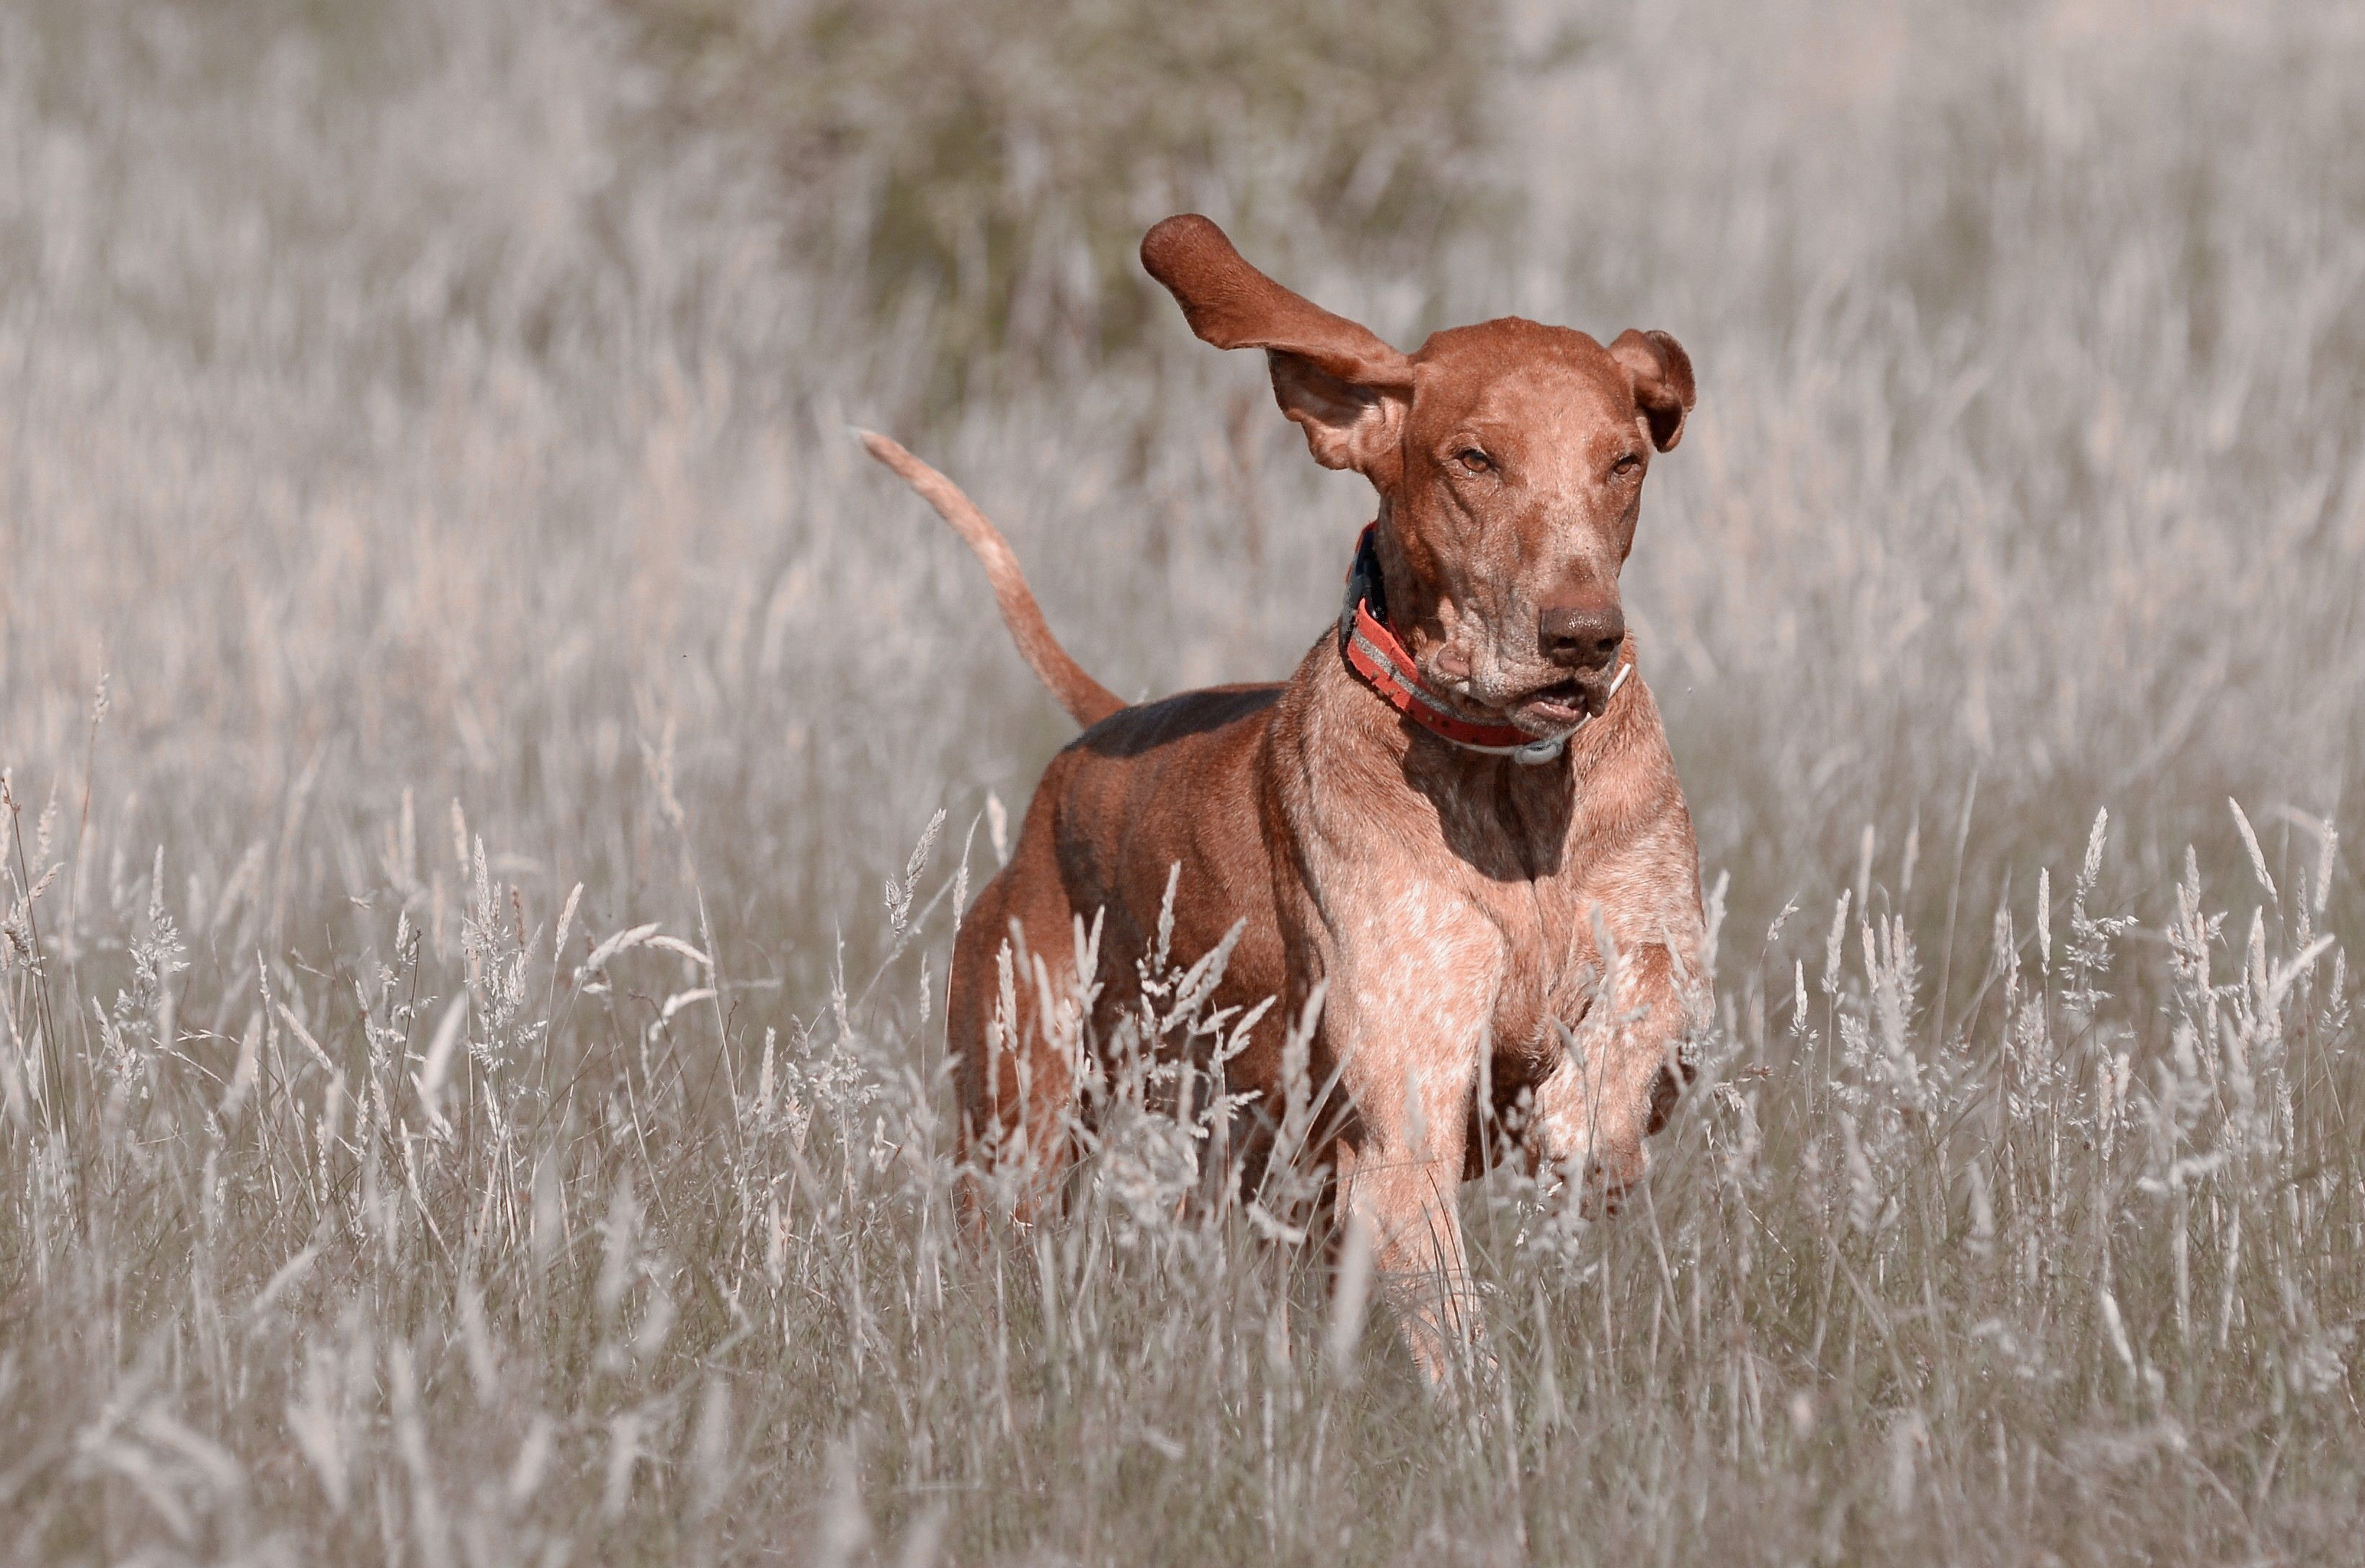 BRACCO ITALIANO/ITALIAN POINTER Bracco italiano